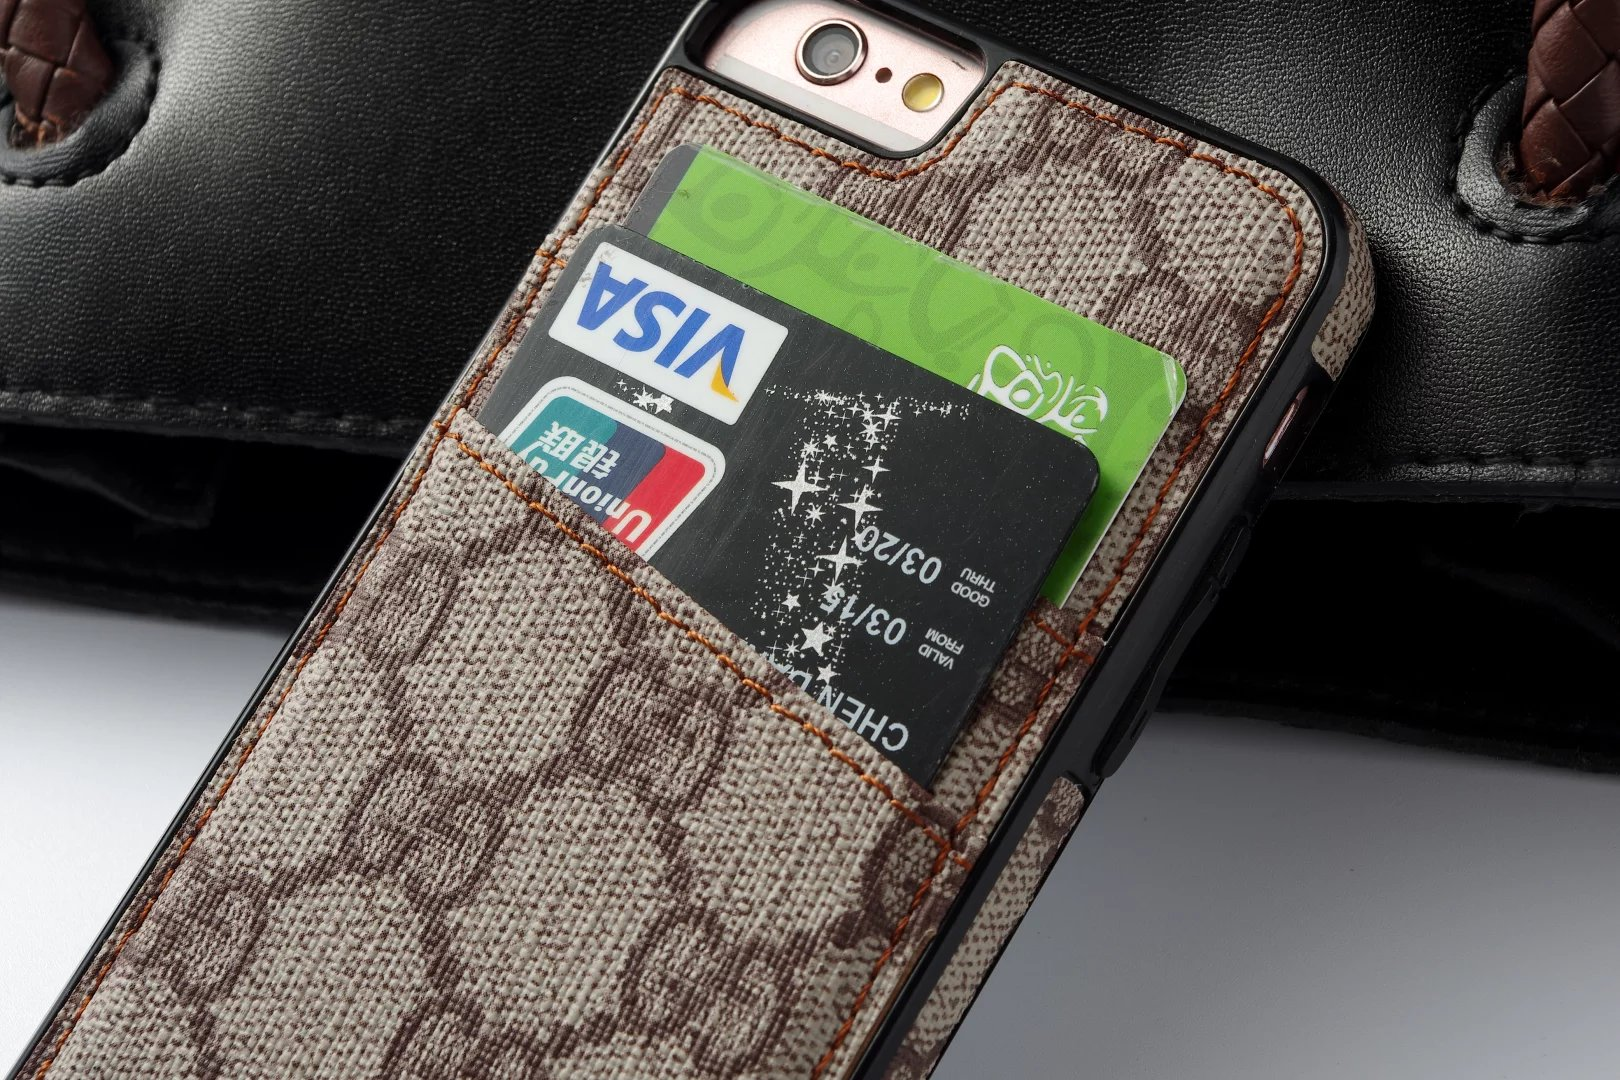 iphone hülle bedrucken lassen iphone klapphülle Louis Vuitton iphone6 plus hülle eigene handyhülle iphone 6 Plus hülle schwarz designer handytaschen iphone 6 Plus angebot iphone 6 Plus iphone 6 was kann es veröffentlichung iphone 6